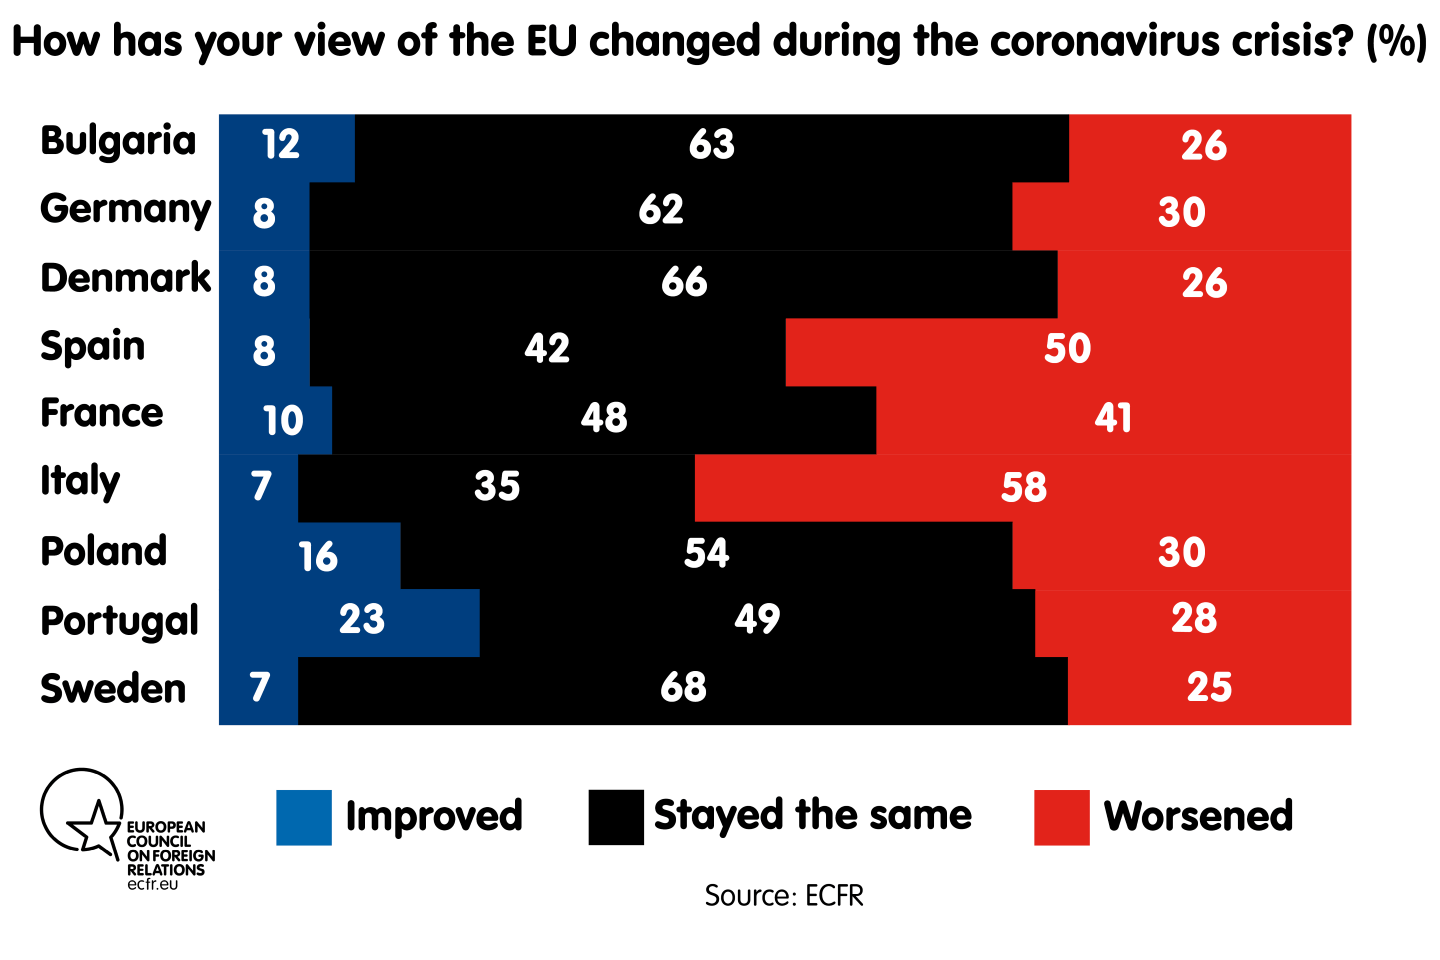 How has your view of the EU changed during the coronavirus crisis?